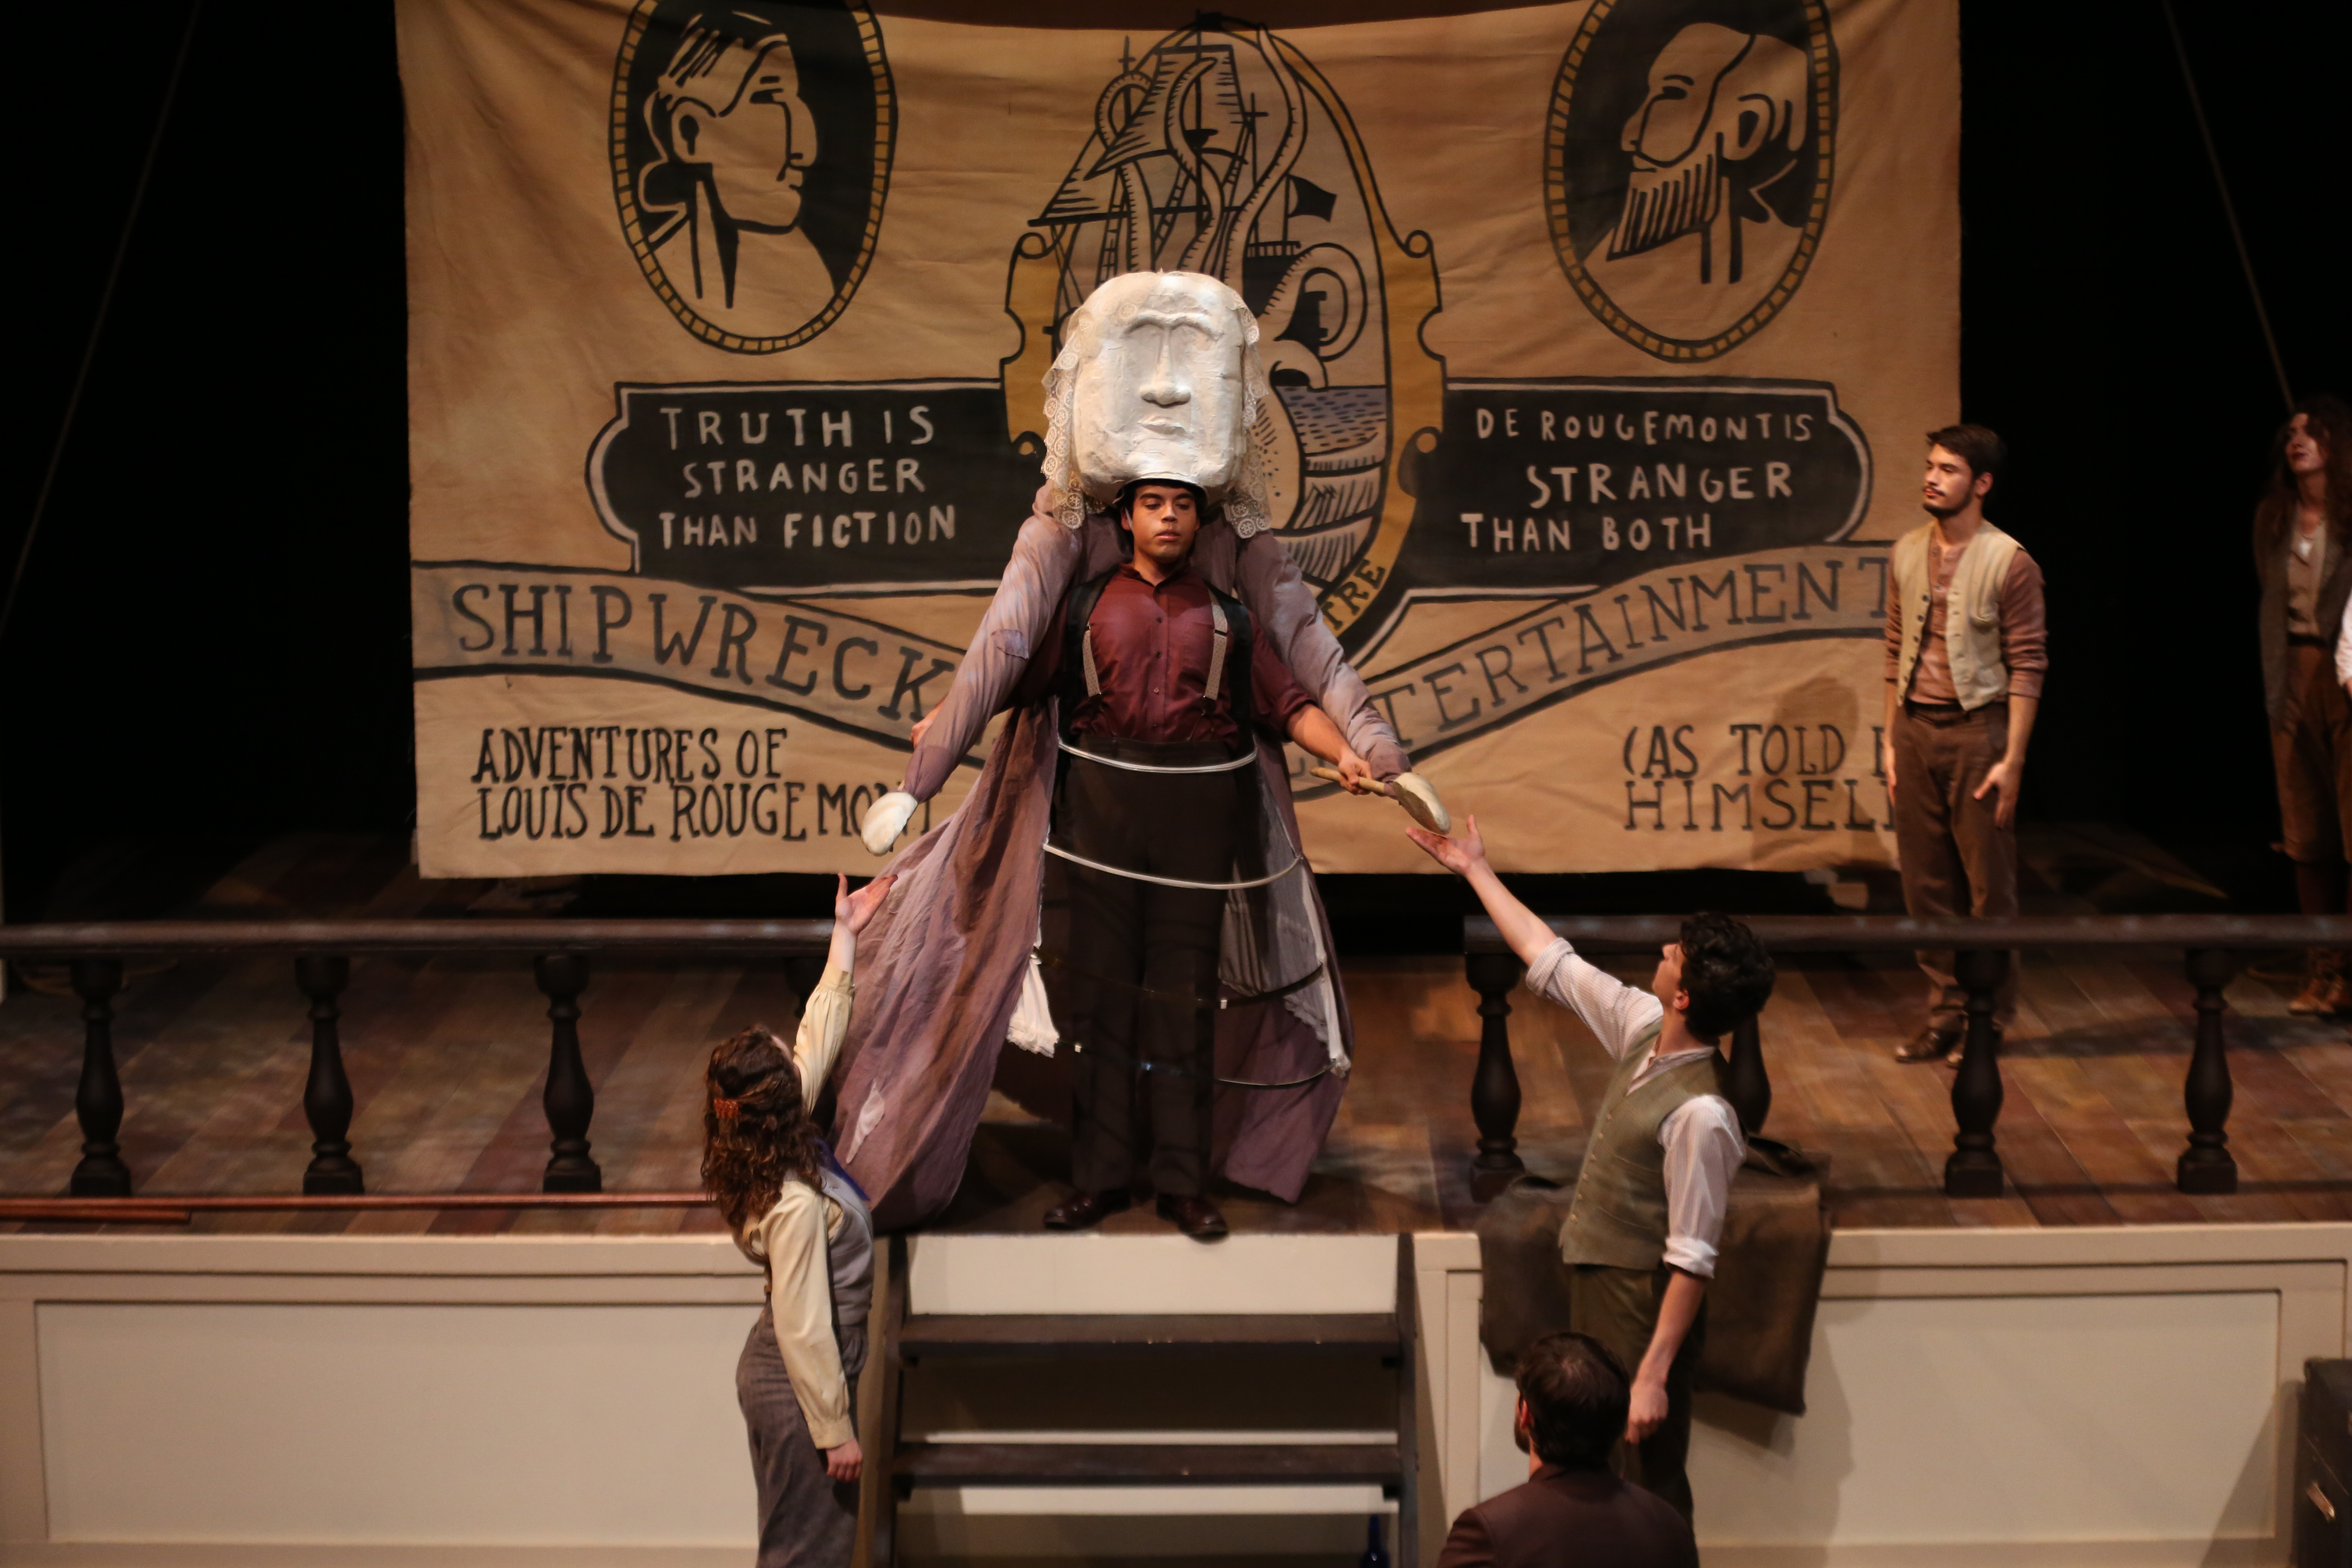 Queen Victoria Puppet - Shipwrecked